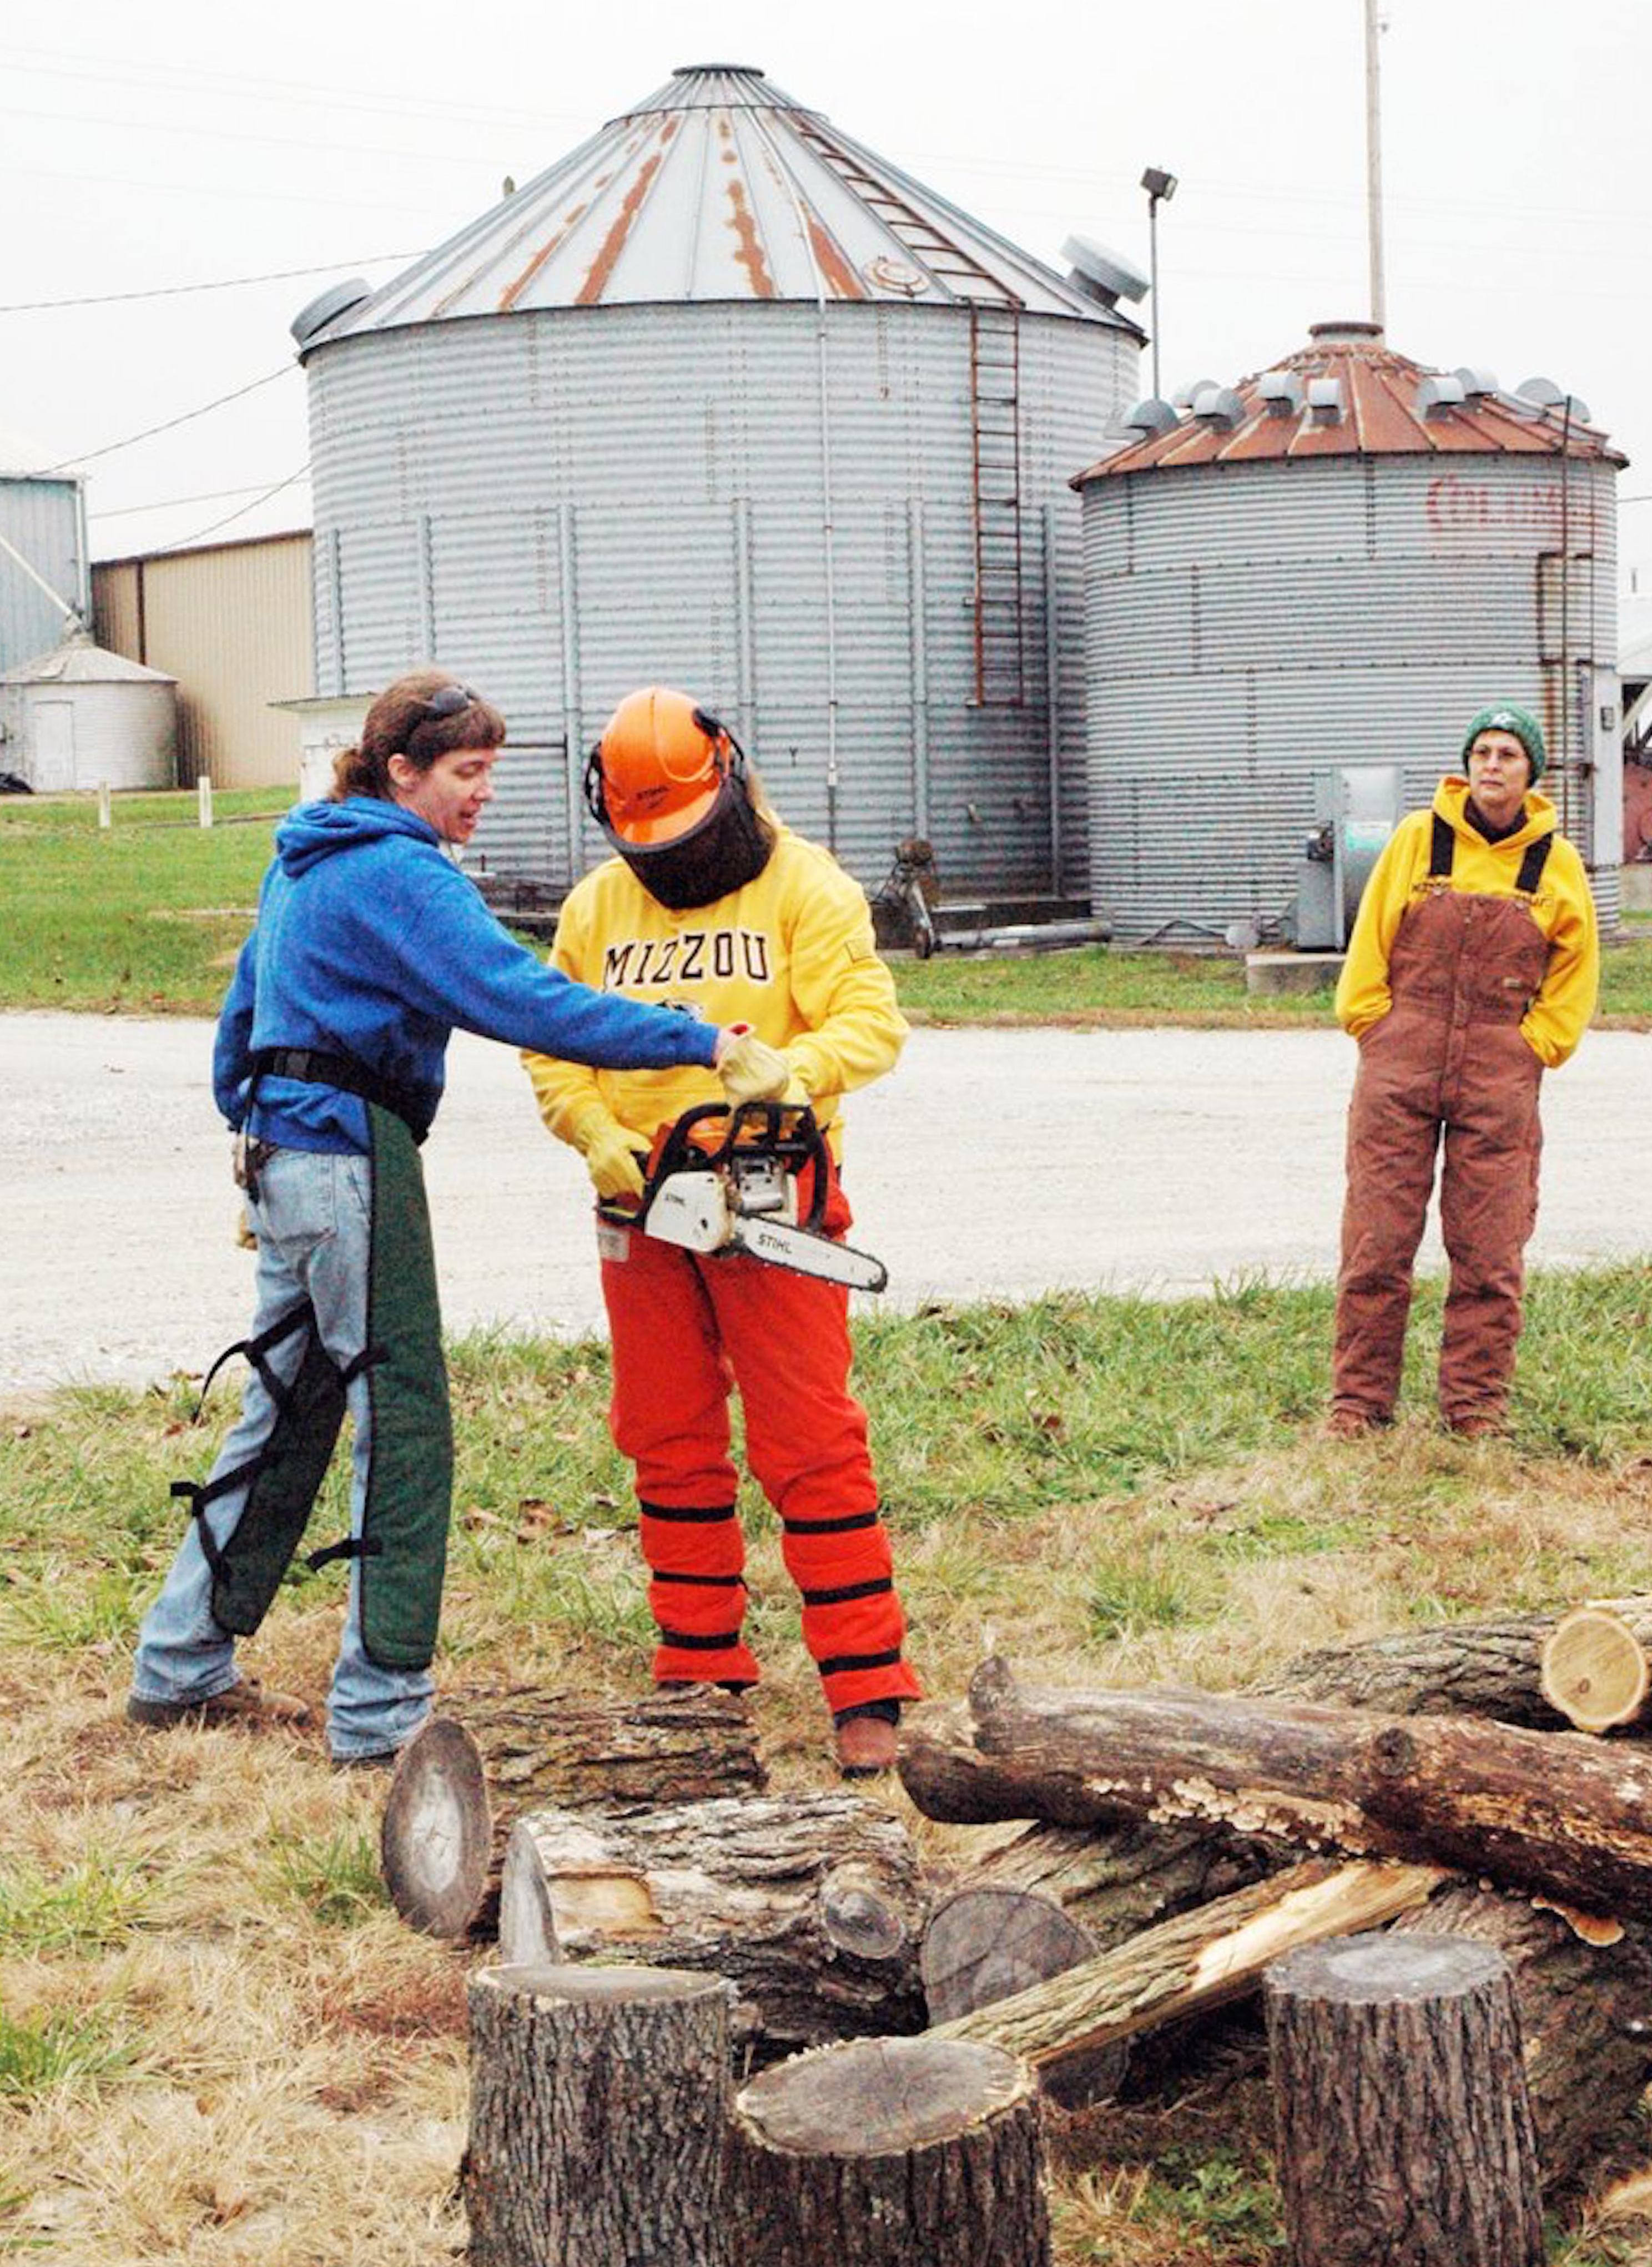 University of Missouri Extension horticulture specialist Katie Kammler gives tips on using chain saws at the recent Pearls of Production event for women livestock operators.